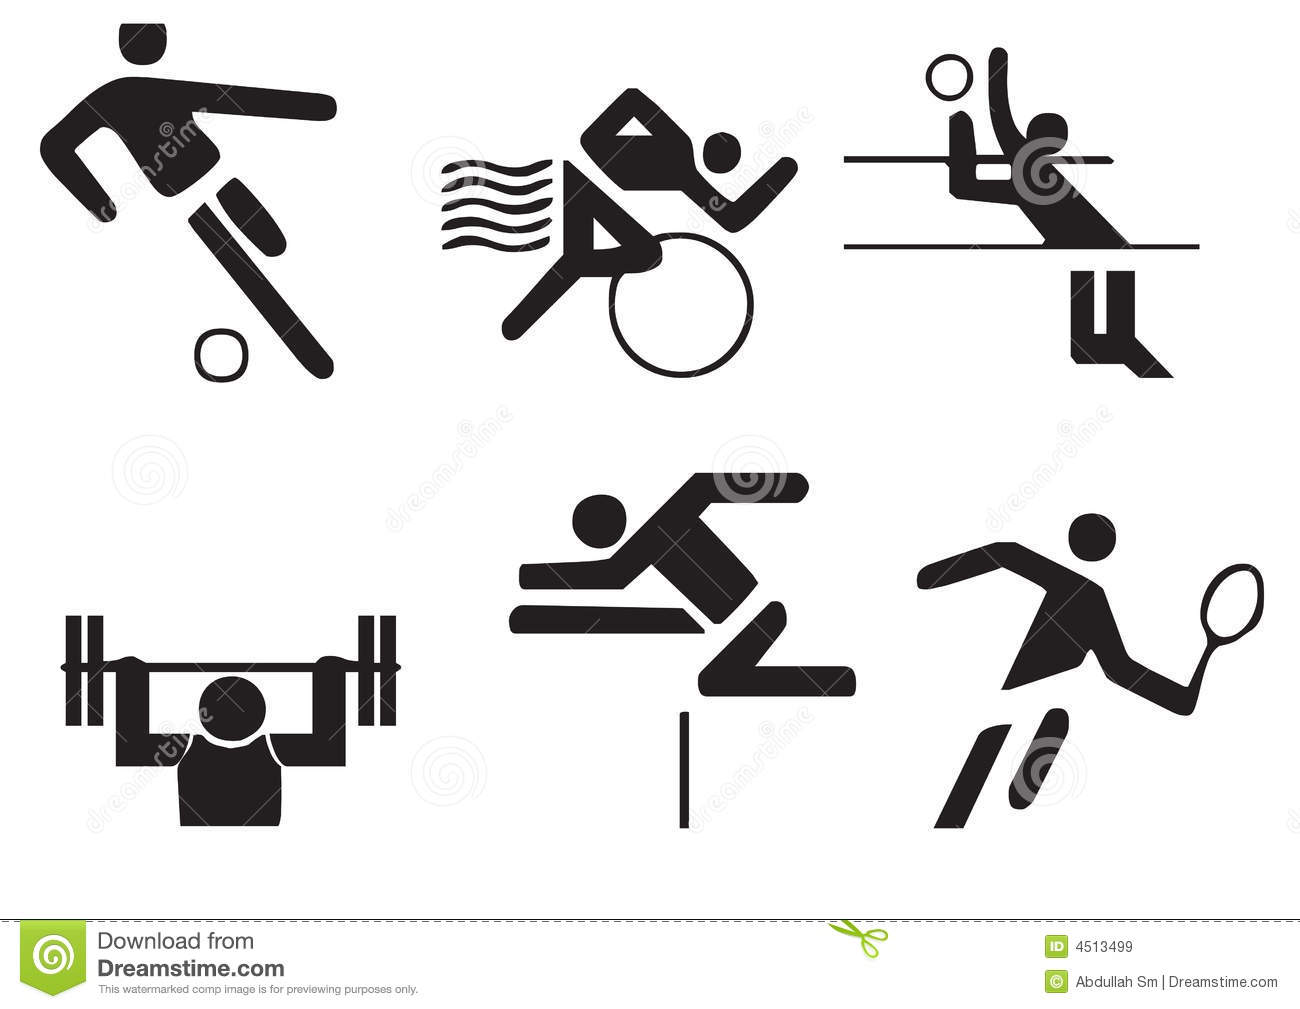 Vector sports symbols stock illustration. Illustration of games.